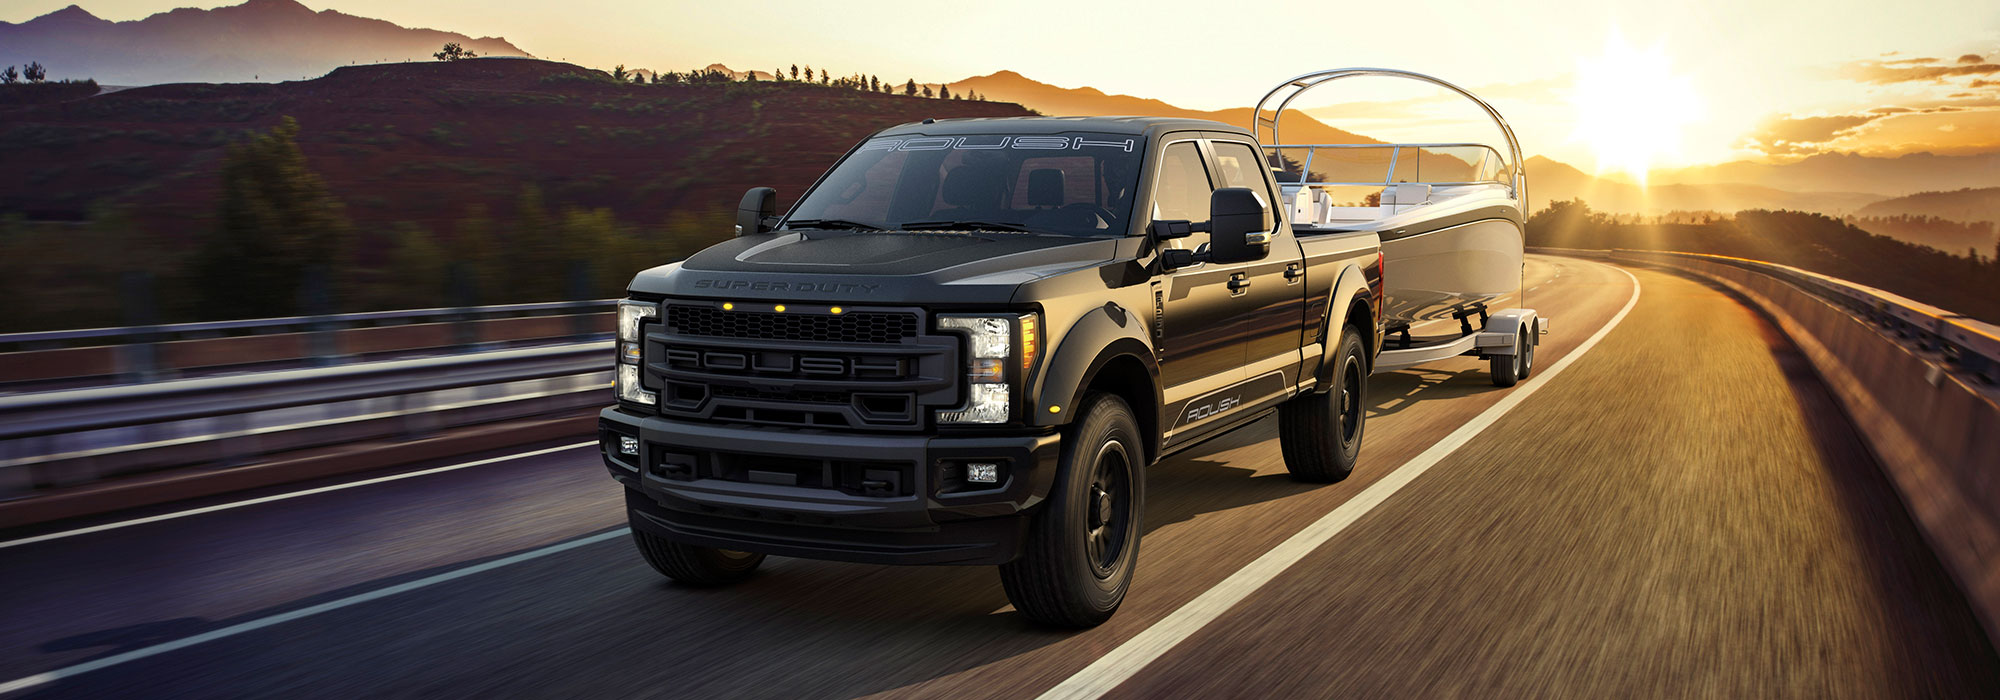 2019 ROUSH F-150 Super Duty